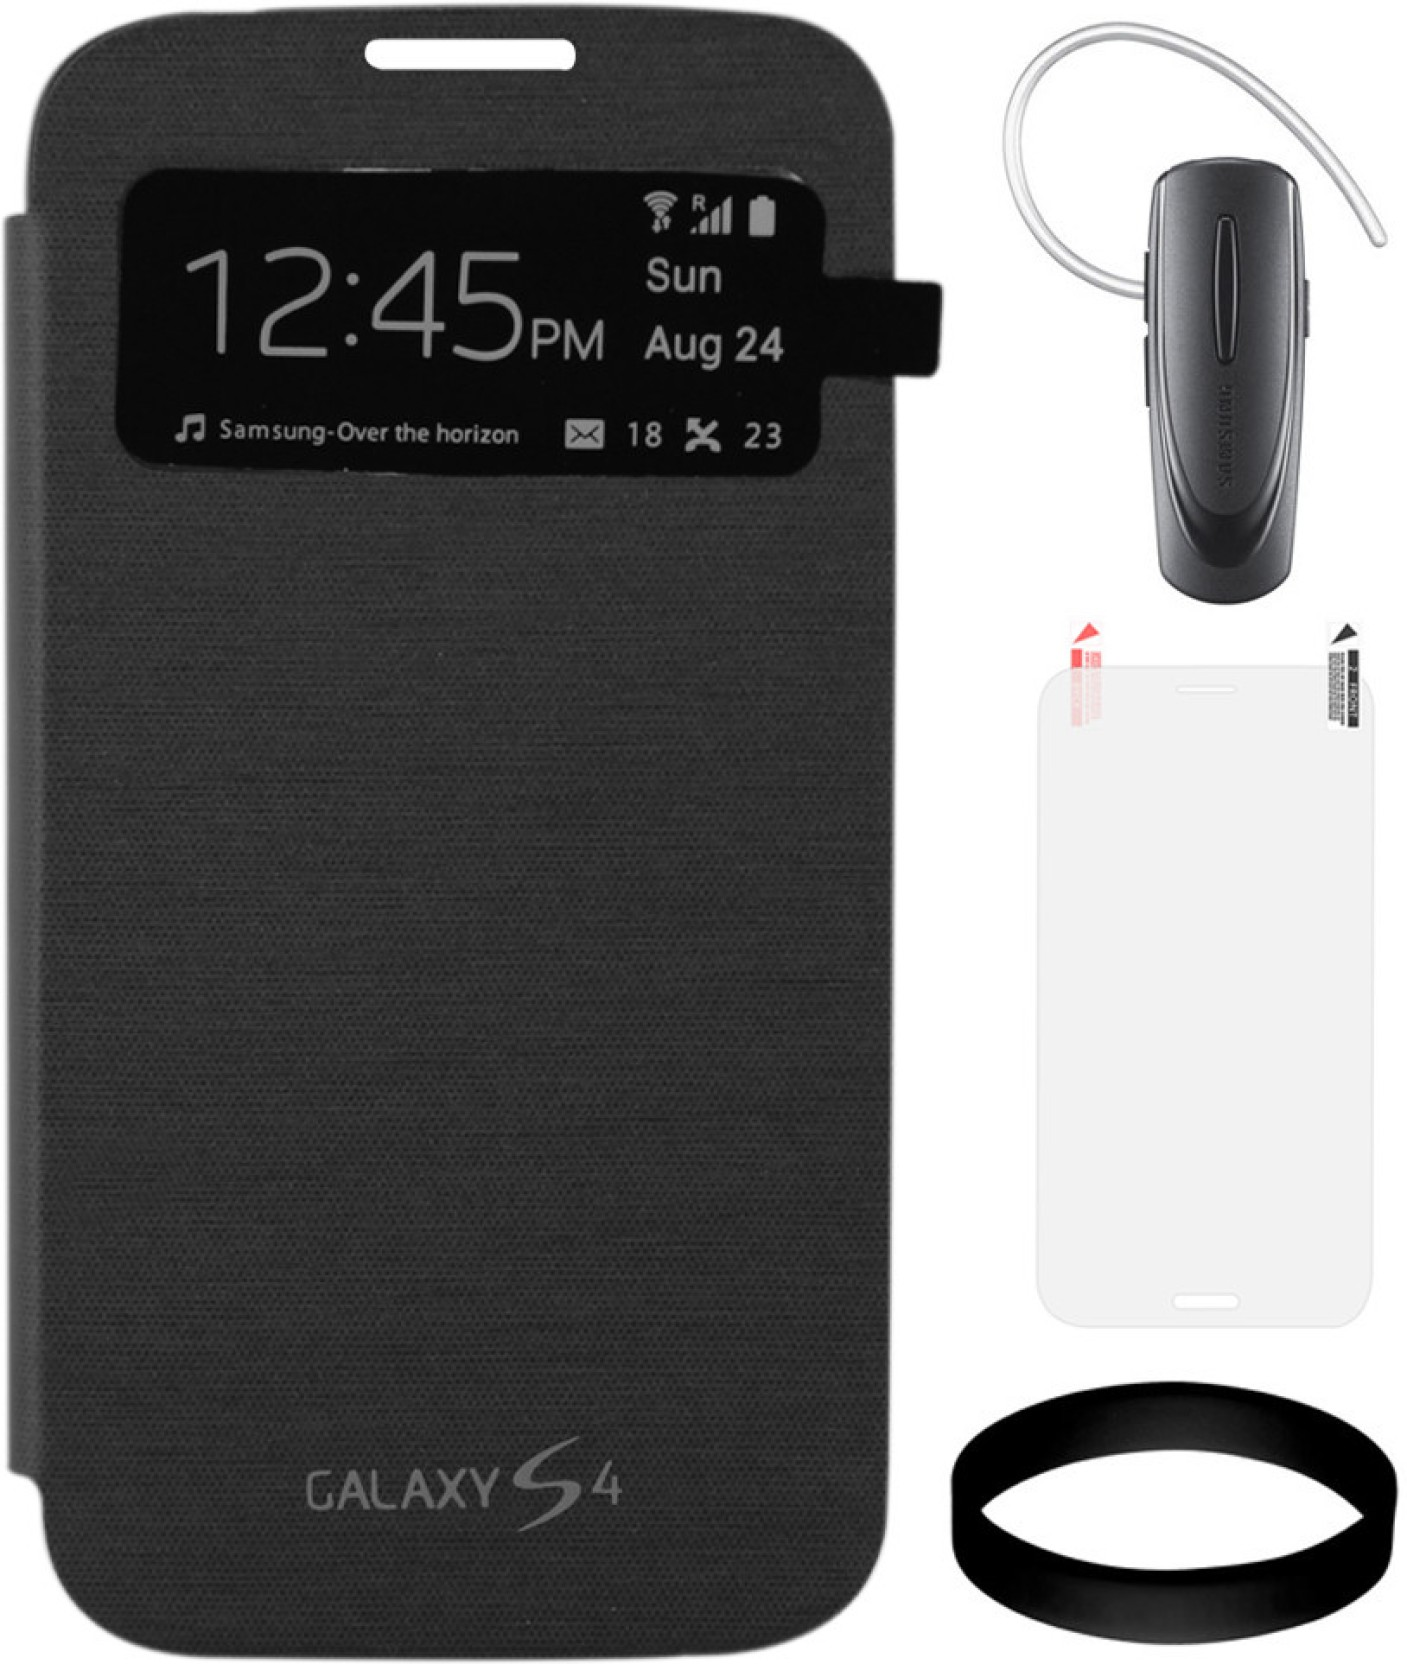 Dmg S View Flip Cover For Samsung Galaxy S4 I9500 Black With New All Hm1100 Share